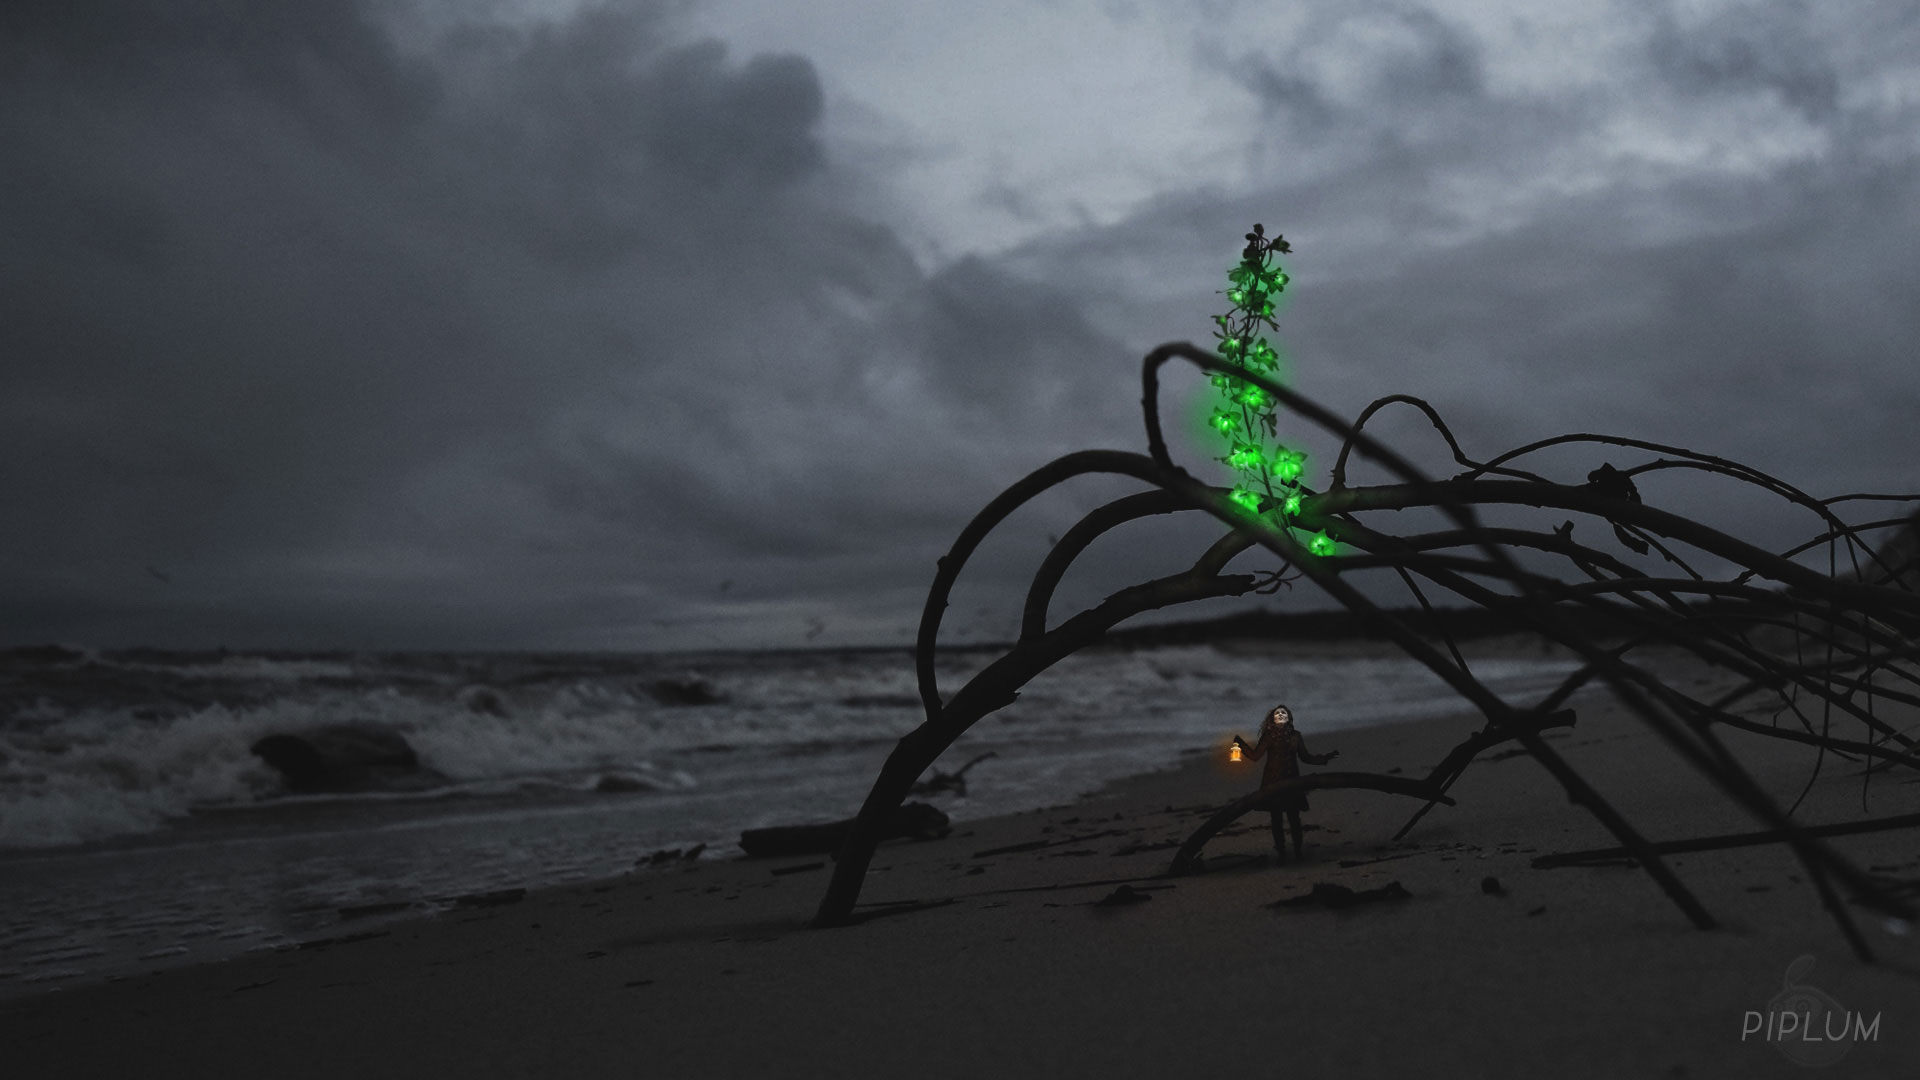 Found-gigantic-green-flower-in-the-beach-surreal-photography.